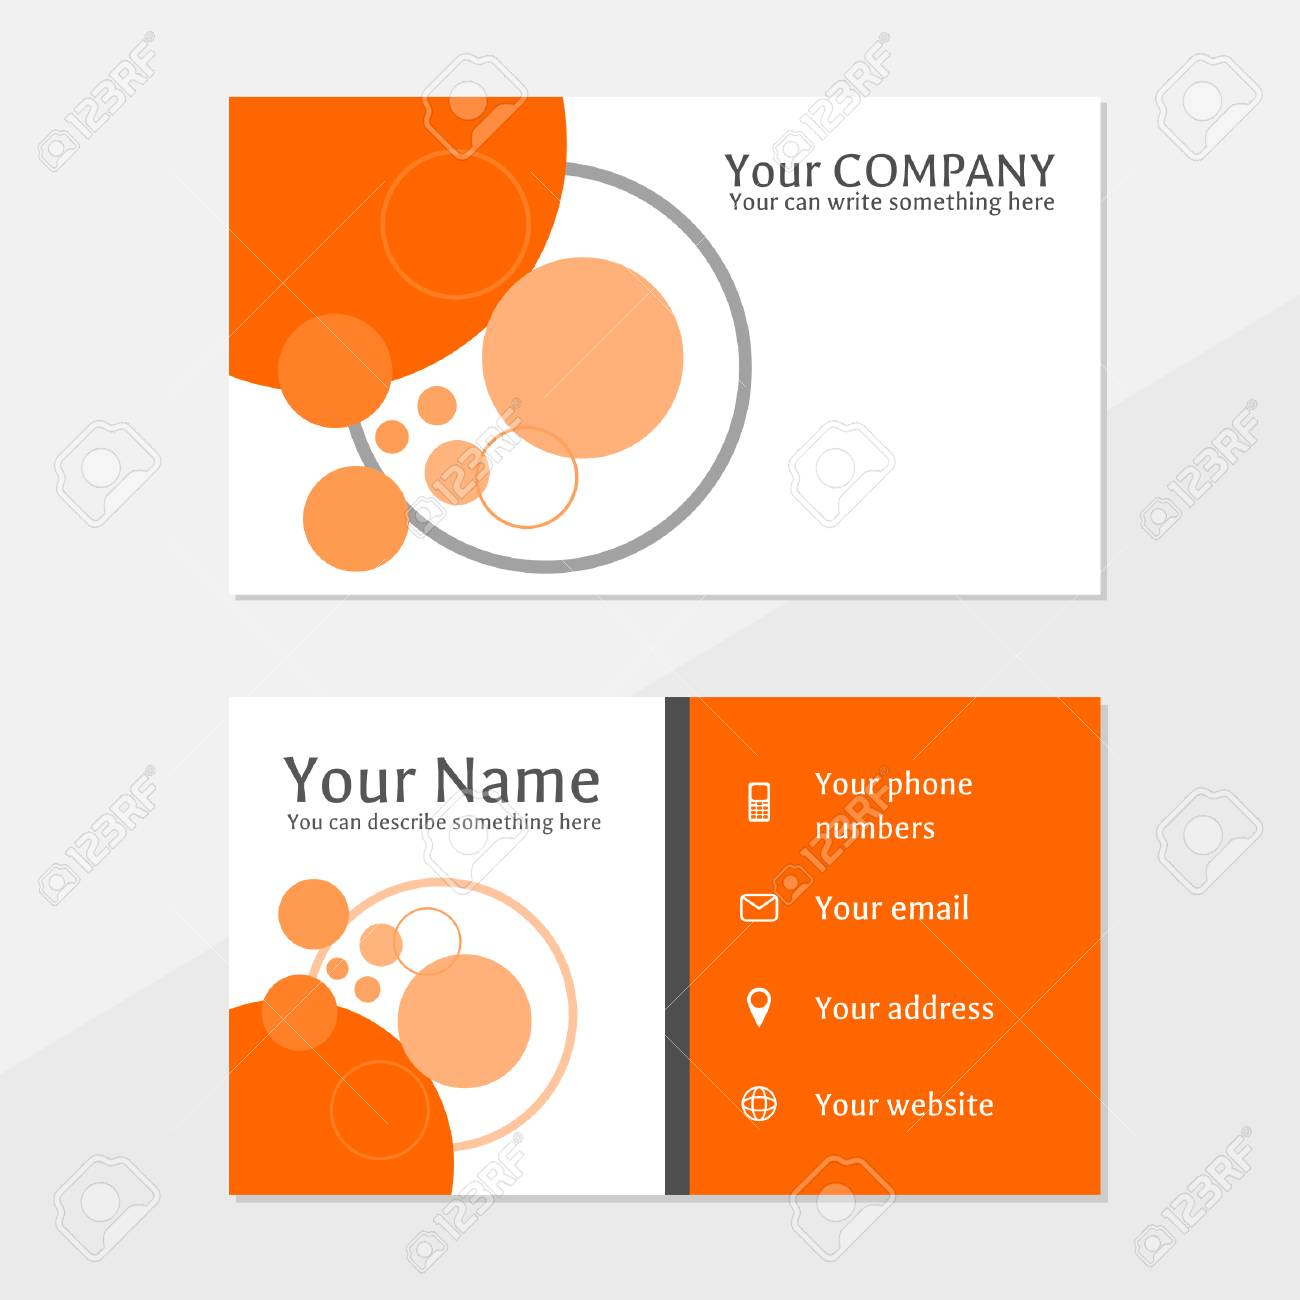 Business card with abstract design royalty free cliparts vetores e banco de imagens business card with abstract design reheart Image collections